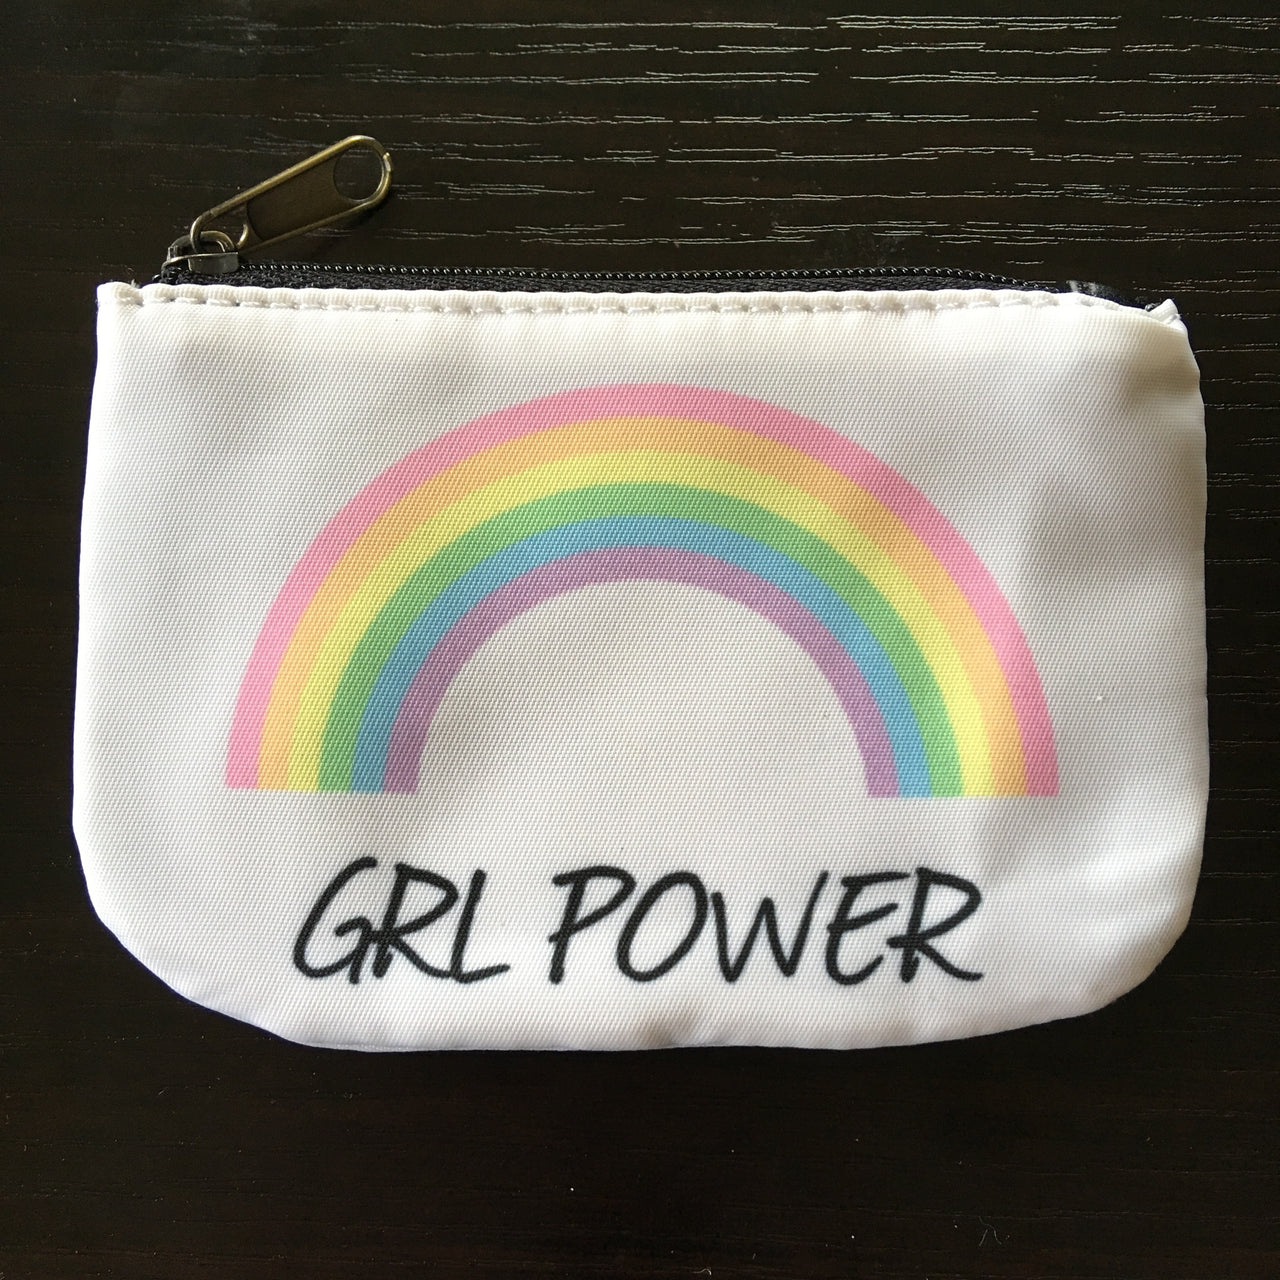 Grl power coin purse - Radical Buttons